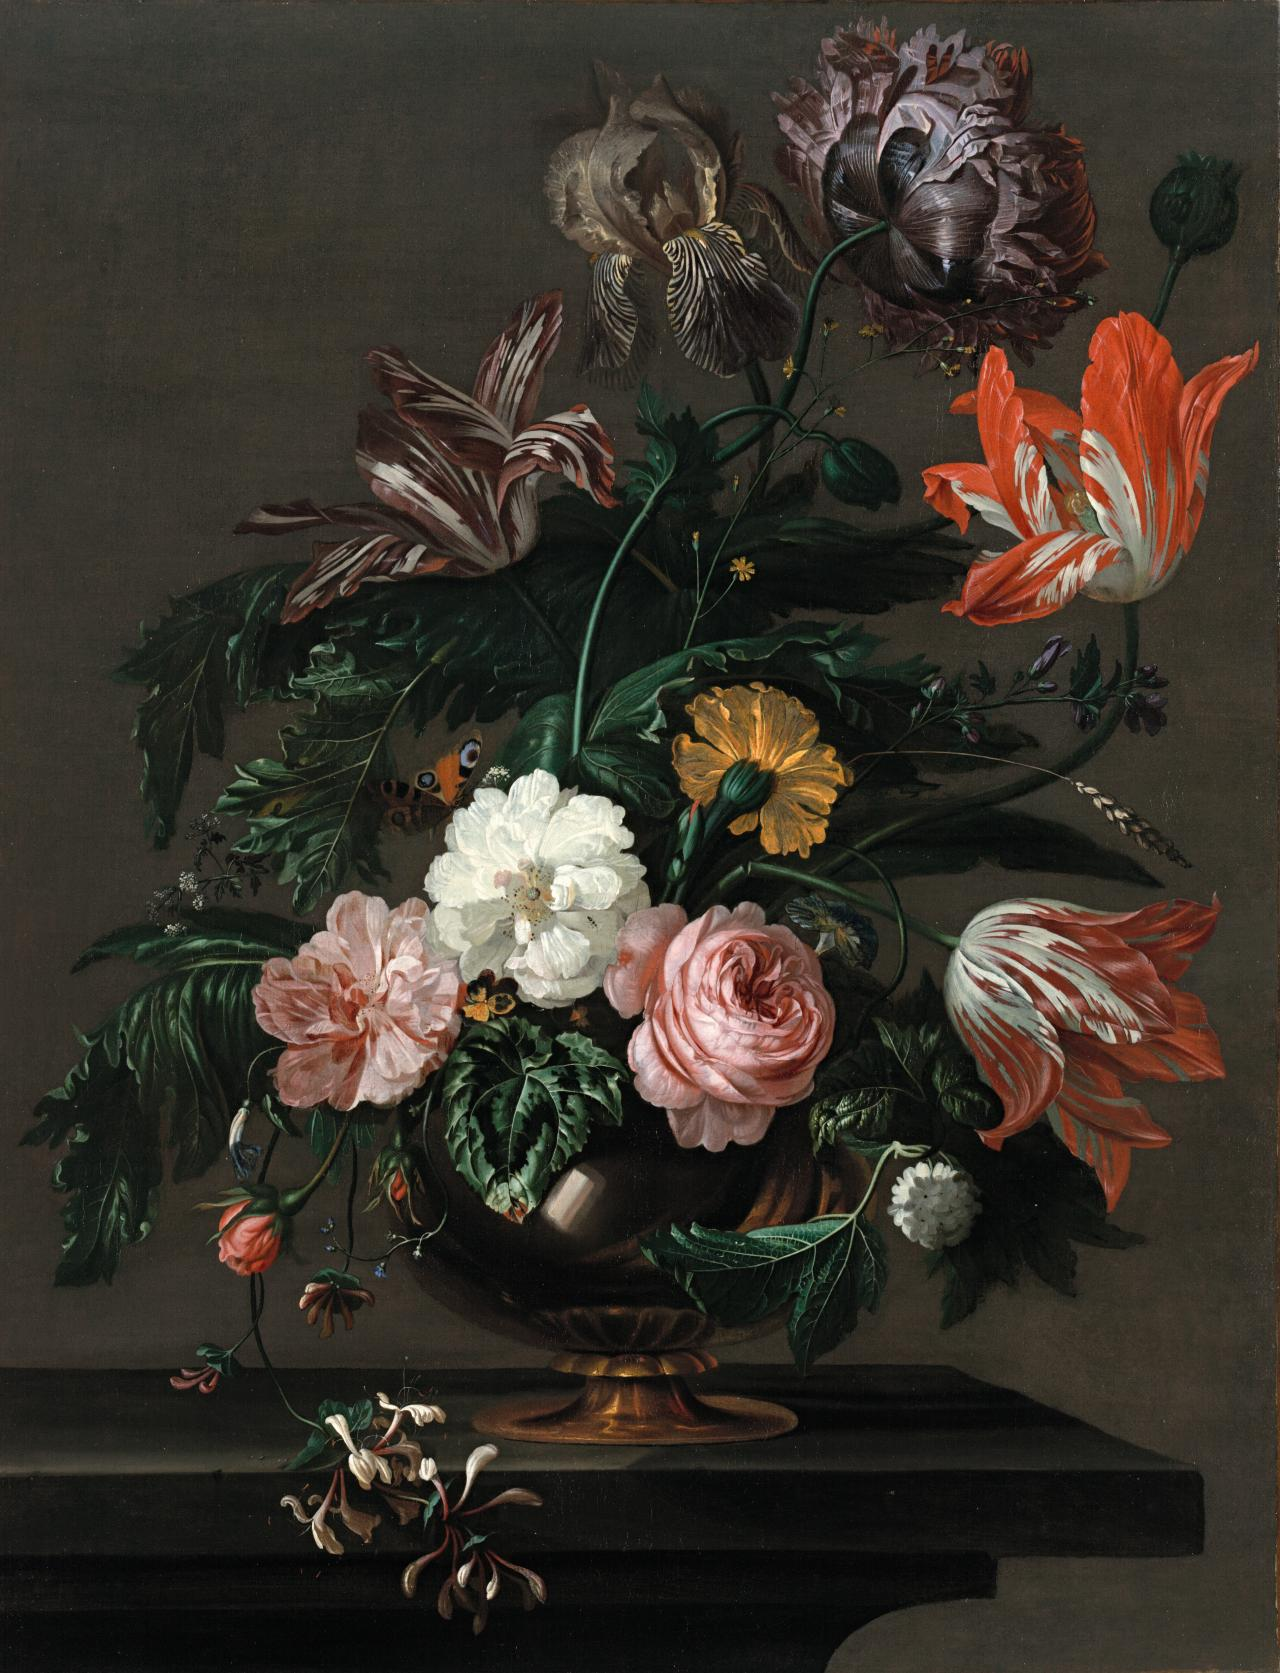 Flowery Borrowings Notes On A Dutch Still Life At The National